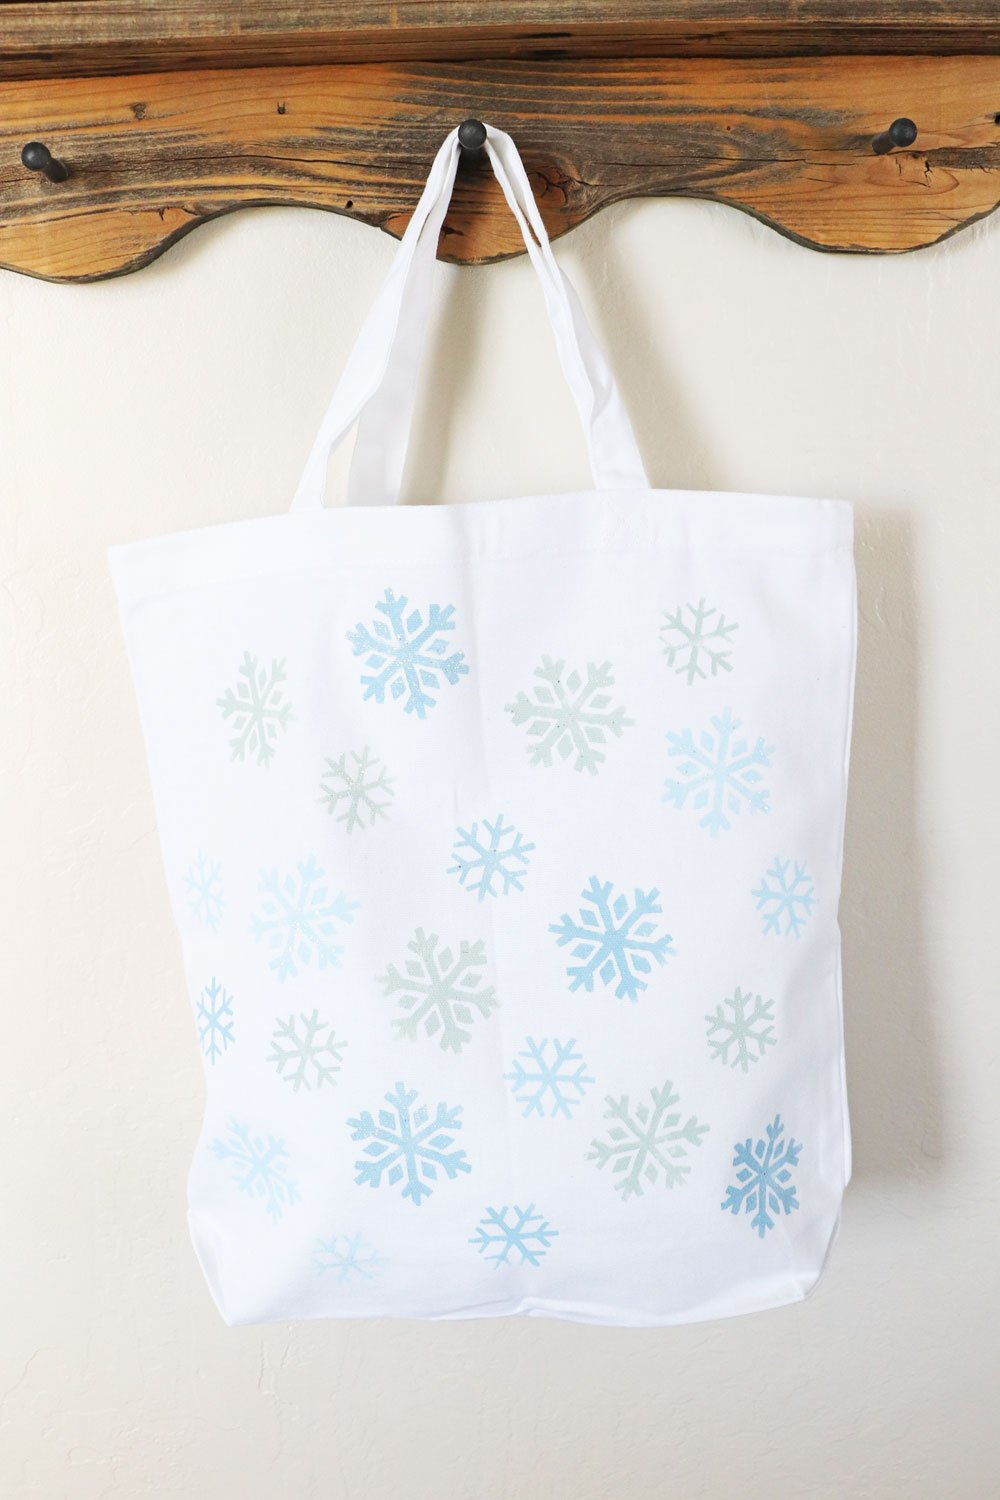 DIY painted snowflake tote bag